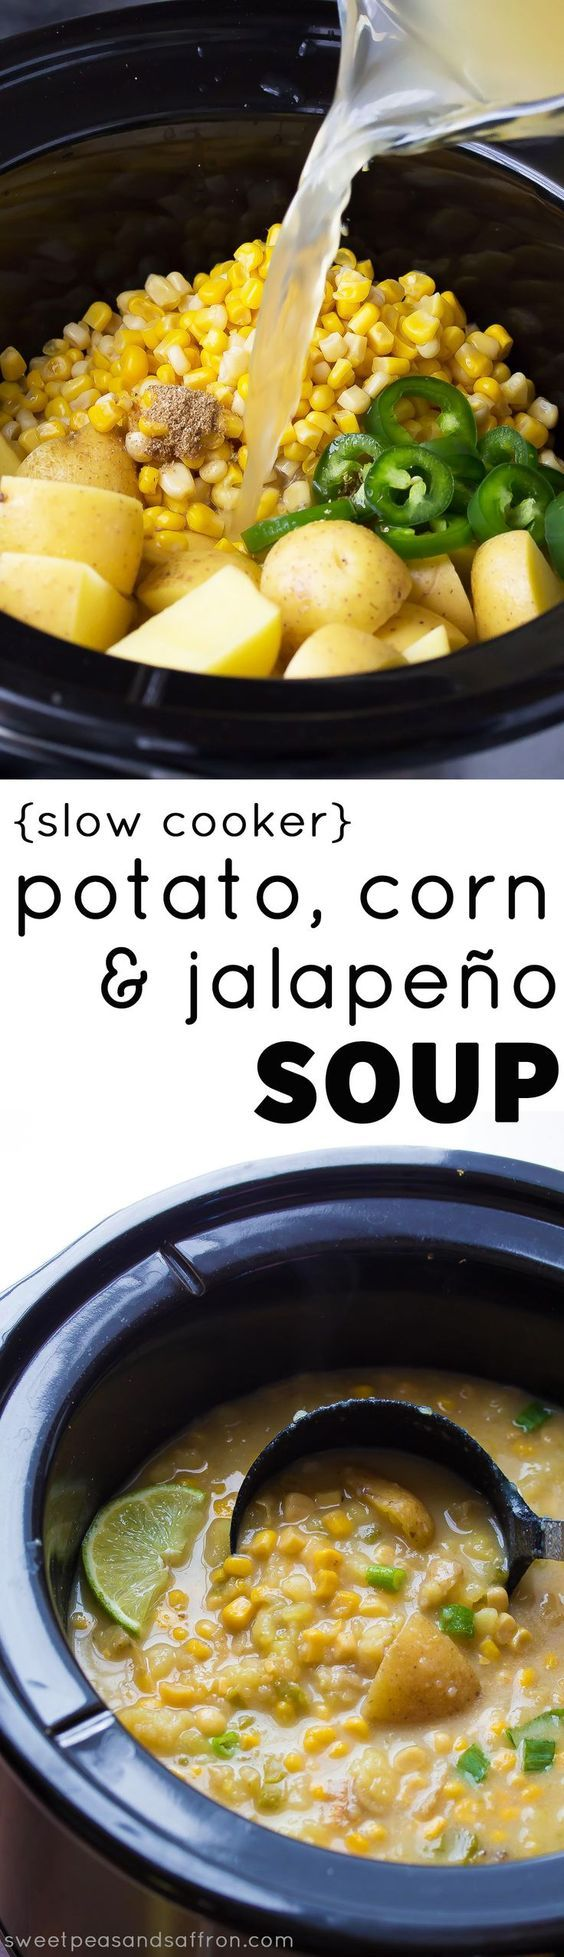 An easy and healthy vegan slow cooker potato corn soup recipe with jalapenos.